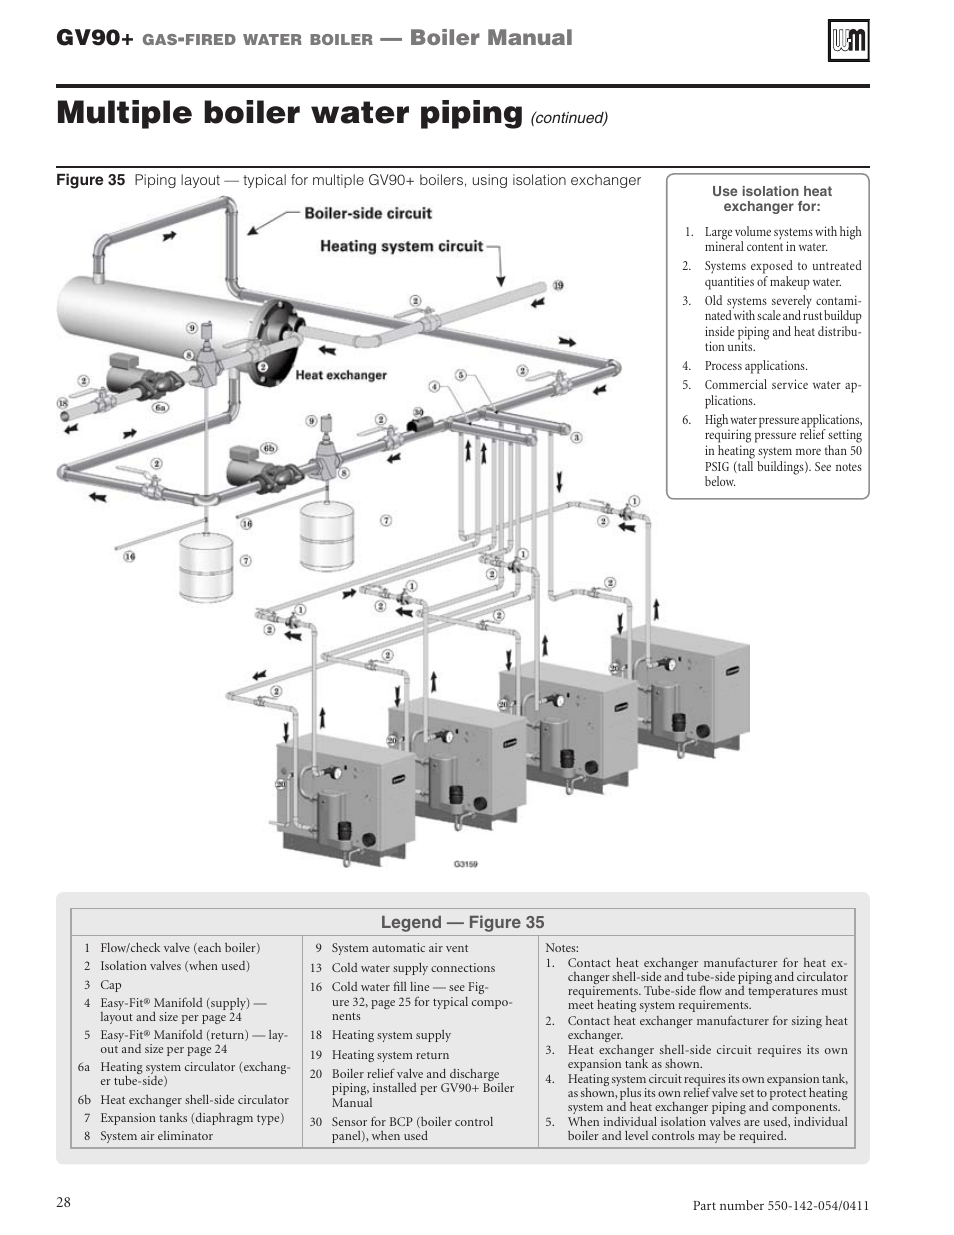 hight resolution of multiple boiler water piping gv90 boiler manual weil mclain gv90 user manual